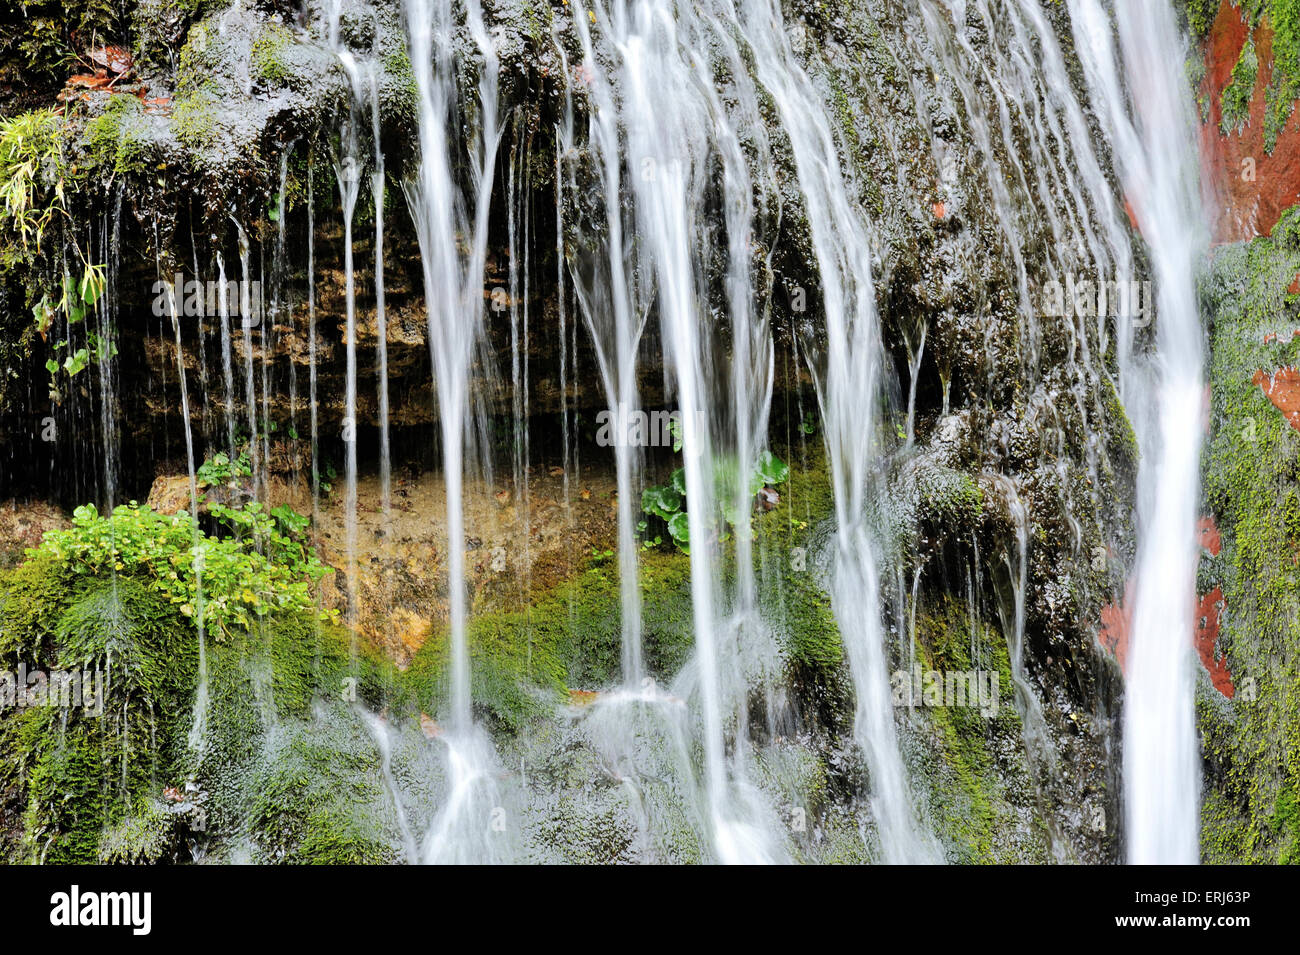 Time exposure of small waterfall in the Gorges du Cians, French Alps, France - Stock Image